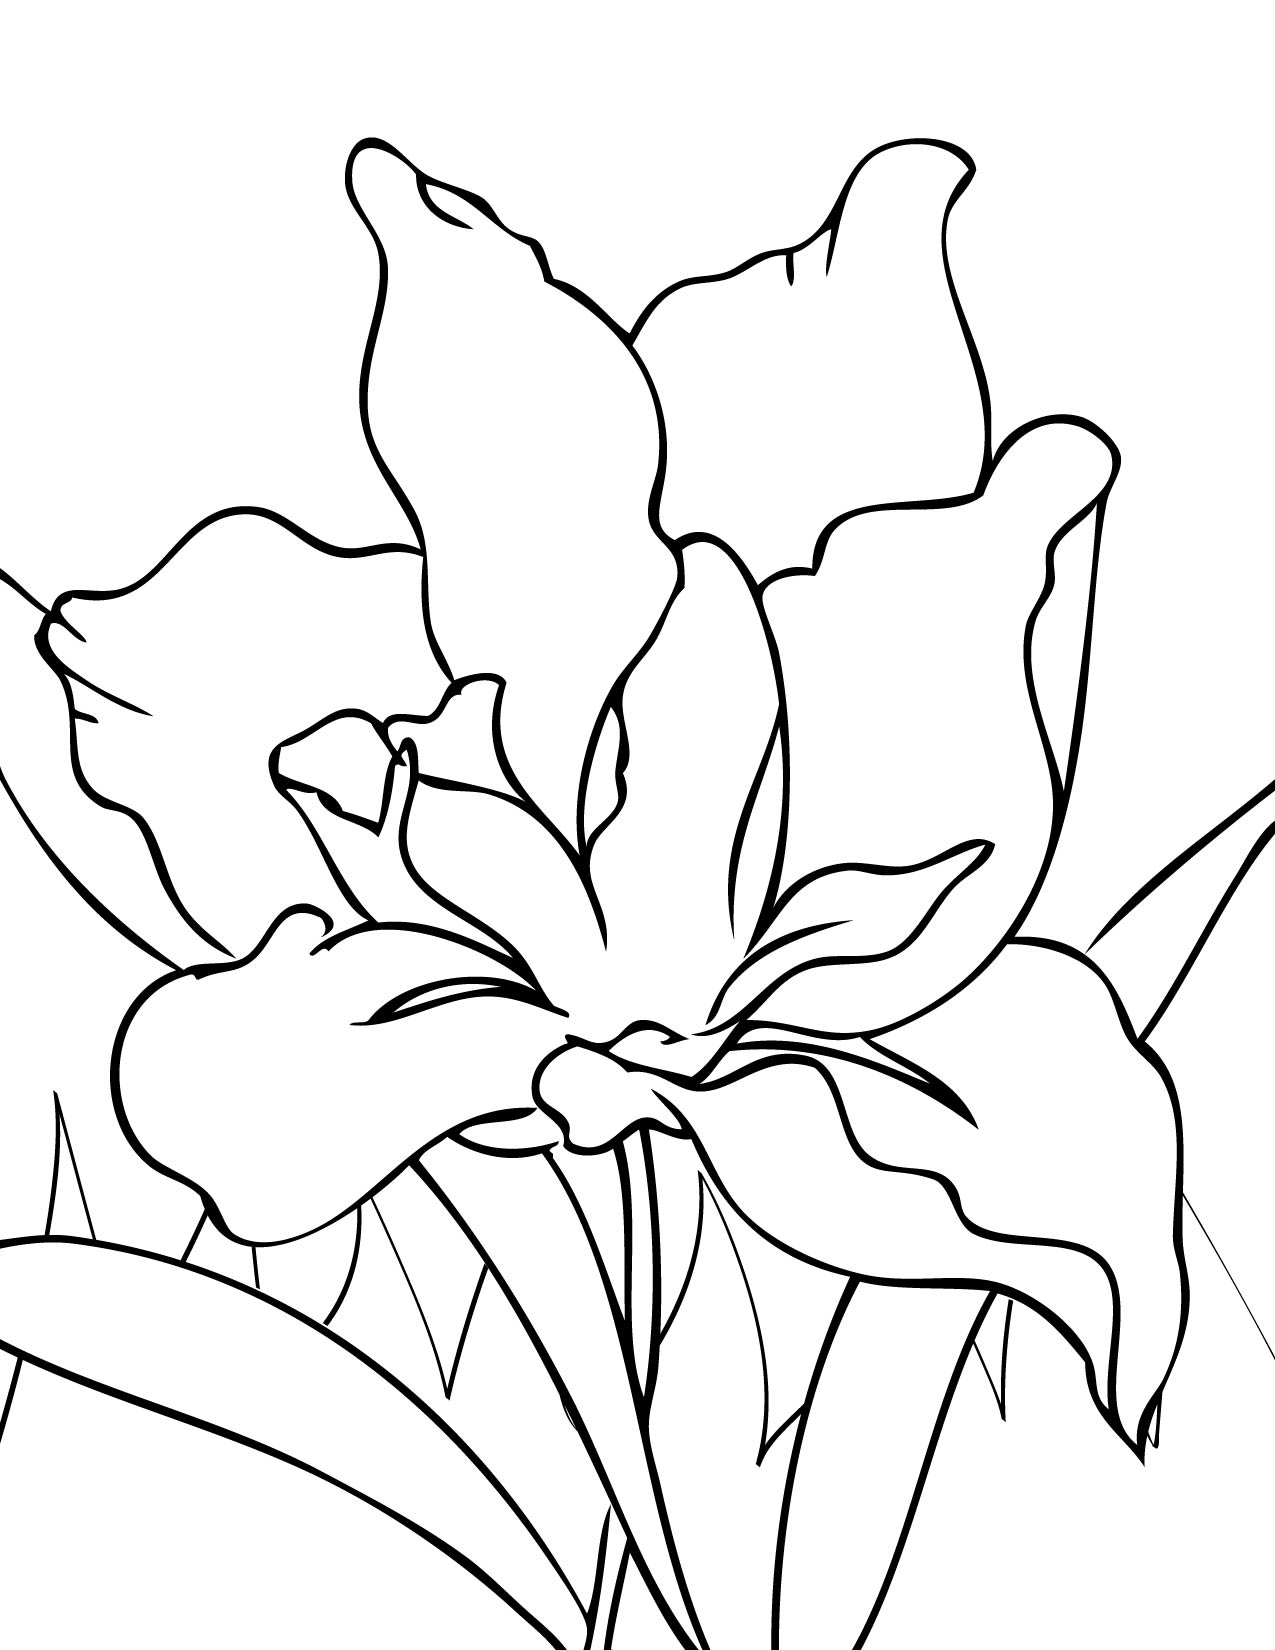 Iris Flower Coloring Page : Handipoints Coloring Pages PrimaryGames.com